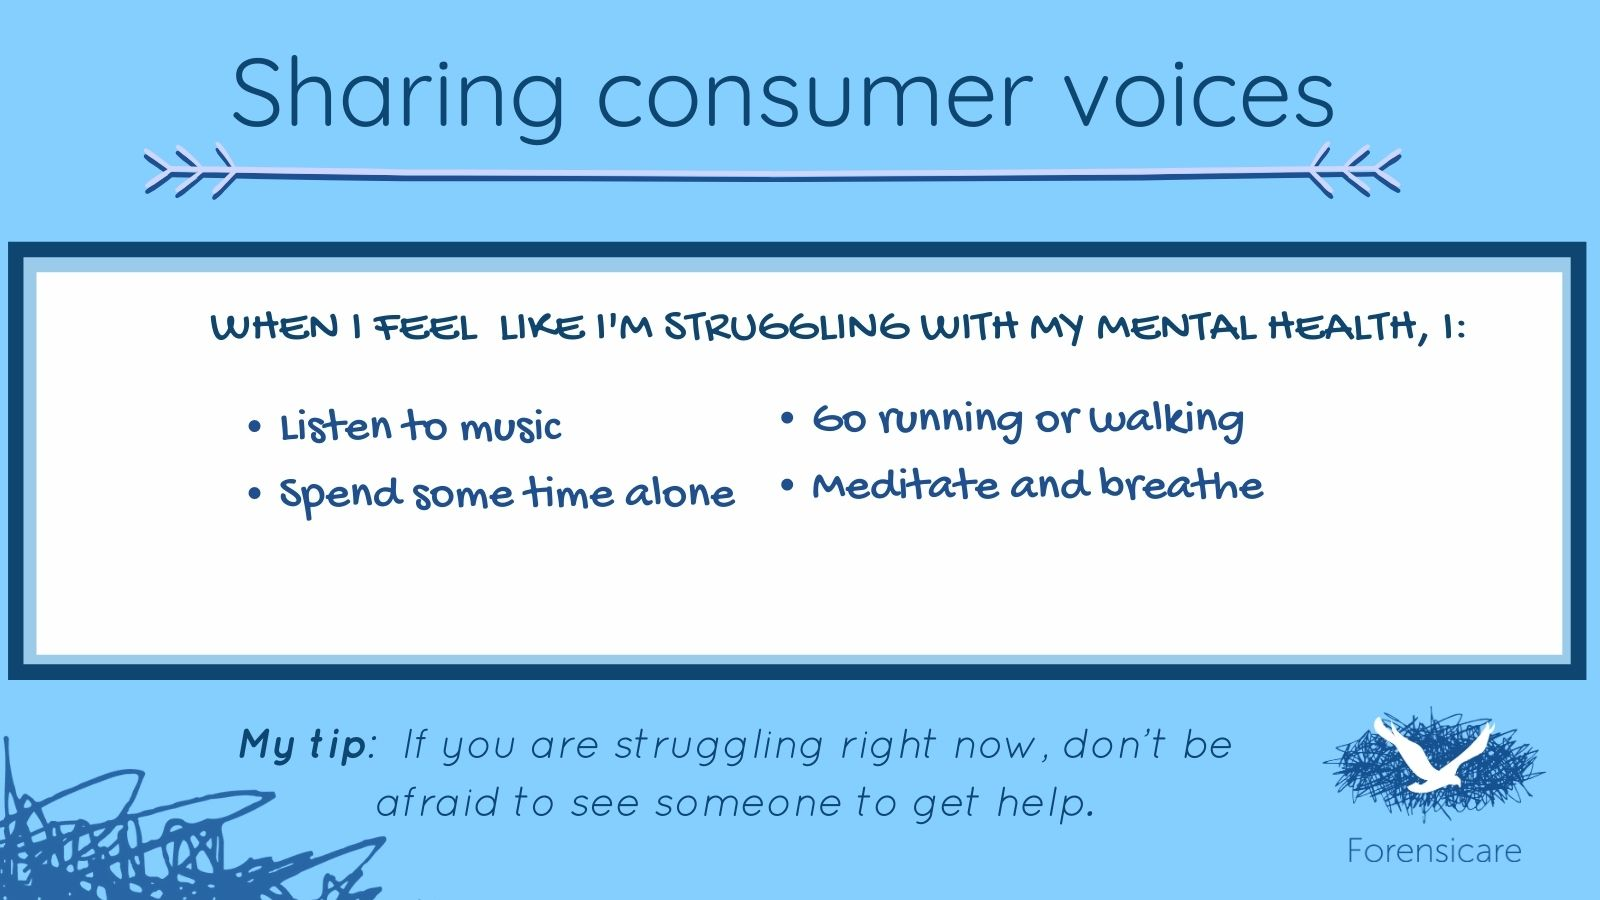 Lived experience mental health tips and advice: sharing the voices of mental health consumers